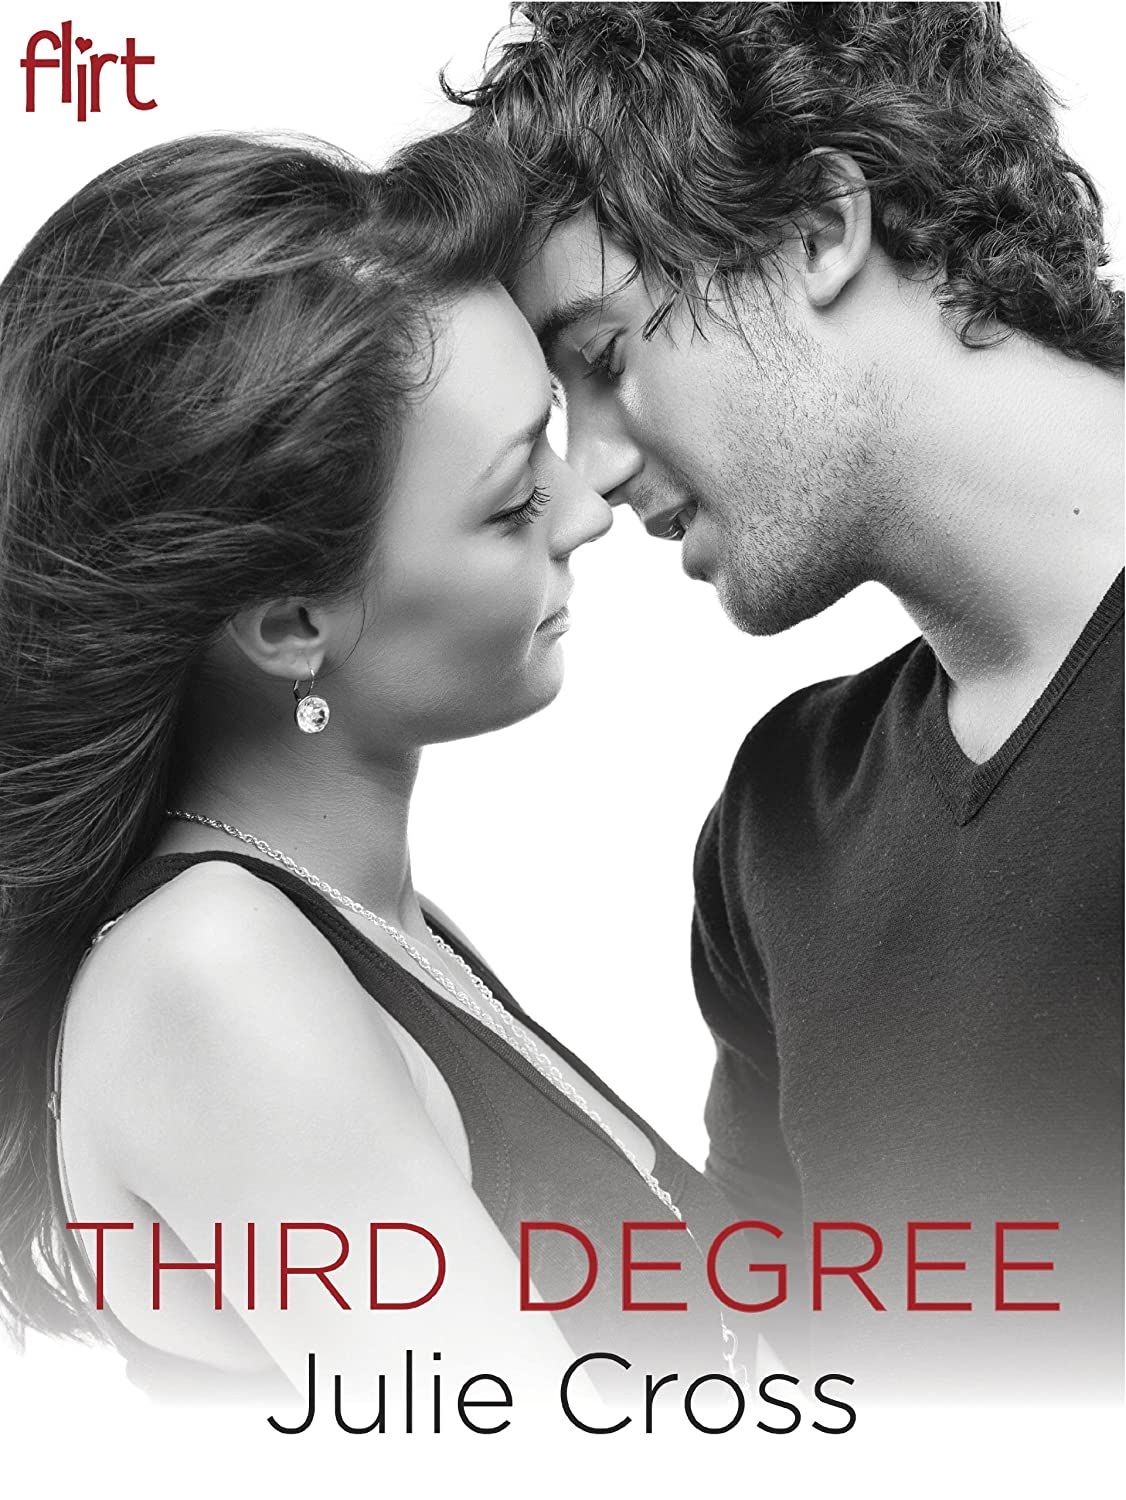 2 The Retribution Of Mara Dyer By Michelle Hodkin (review Here) 3 Third  Degree By Julie Cross (loved, Loved, Loved This Book! Review Here)